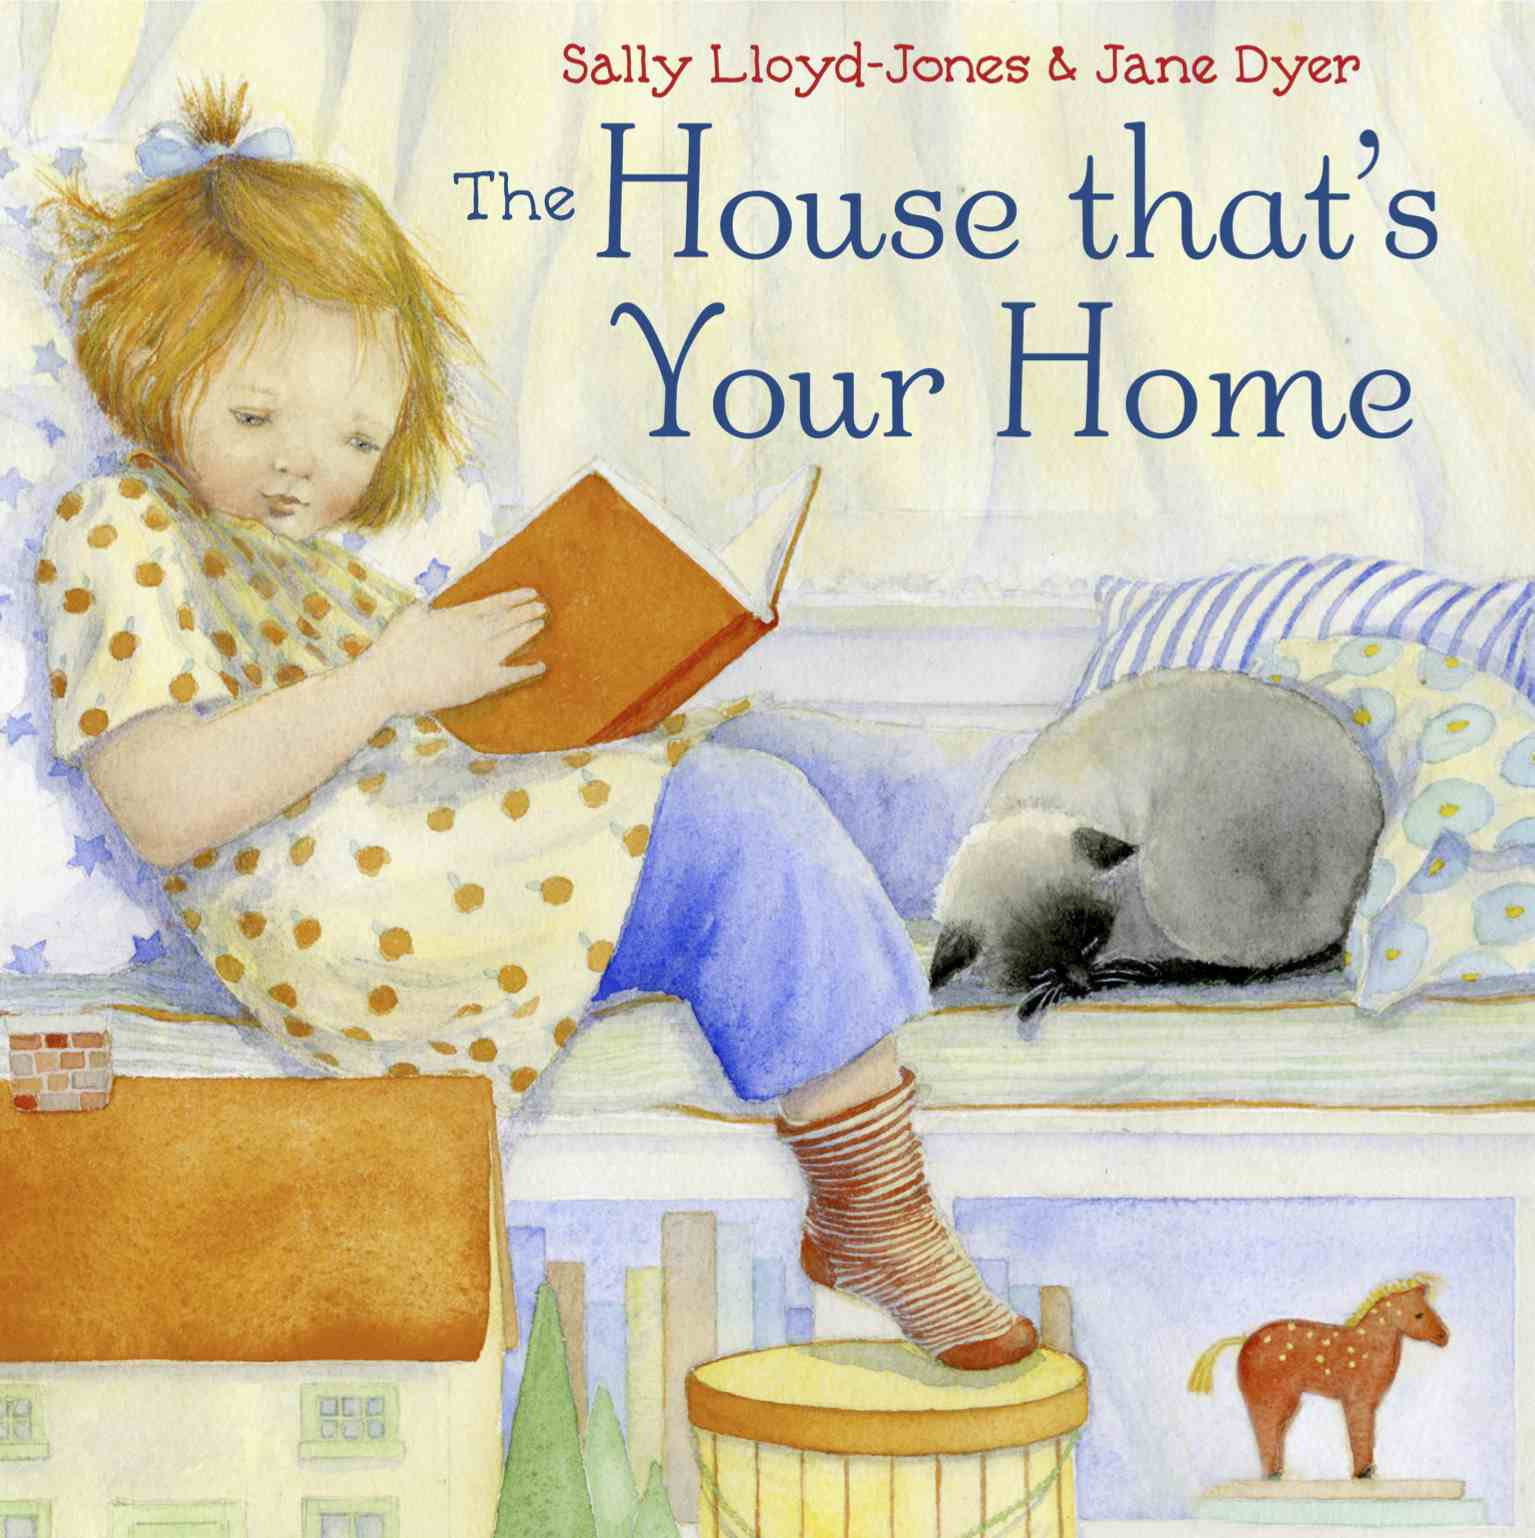 HouseThat'sYourHome